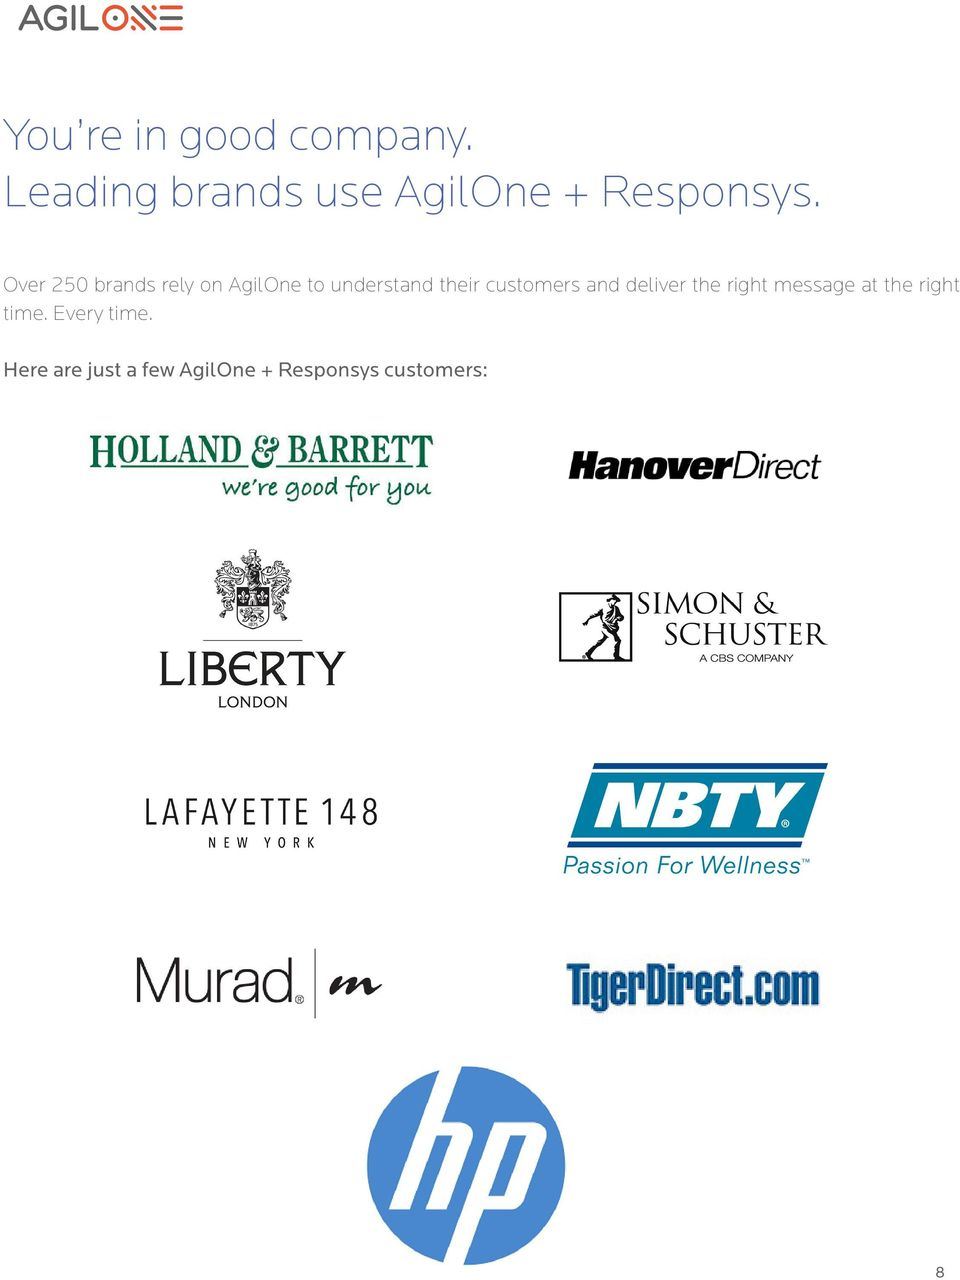 Over 250 brands rely on AgilOne to understand their